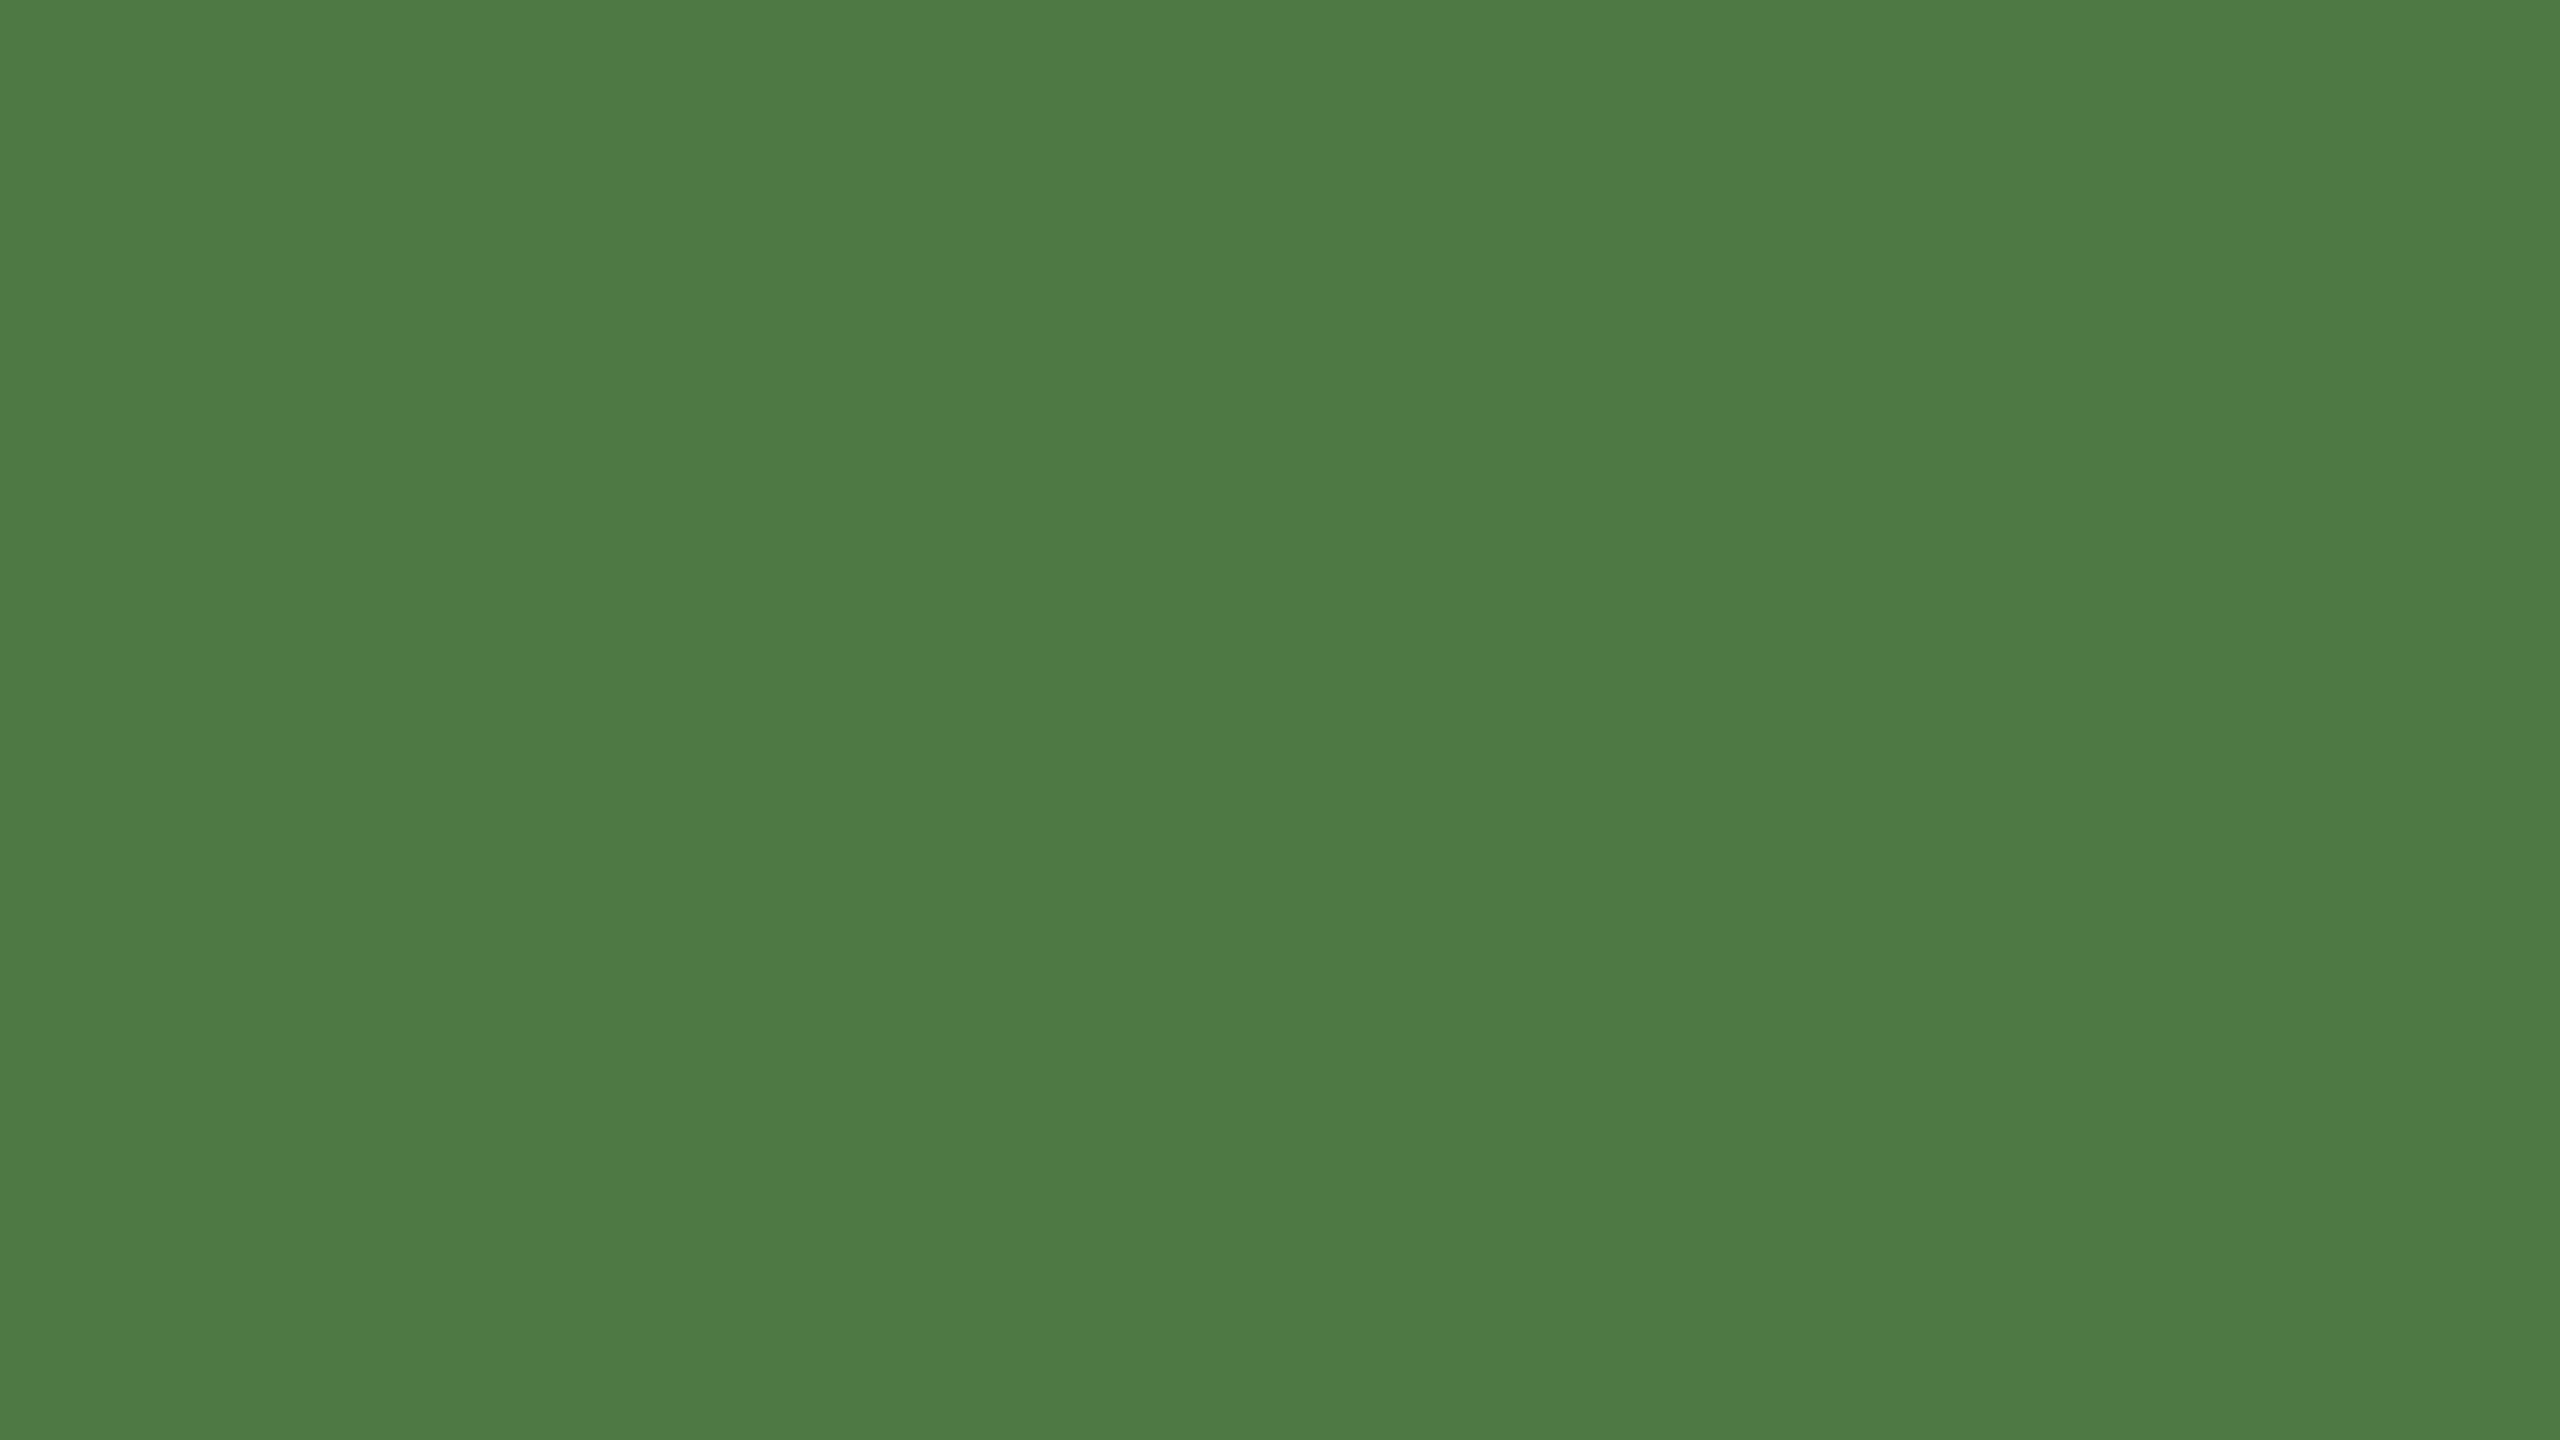 2560x1440 Fern Green Solid Color Background